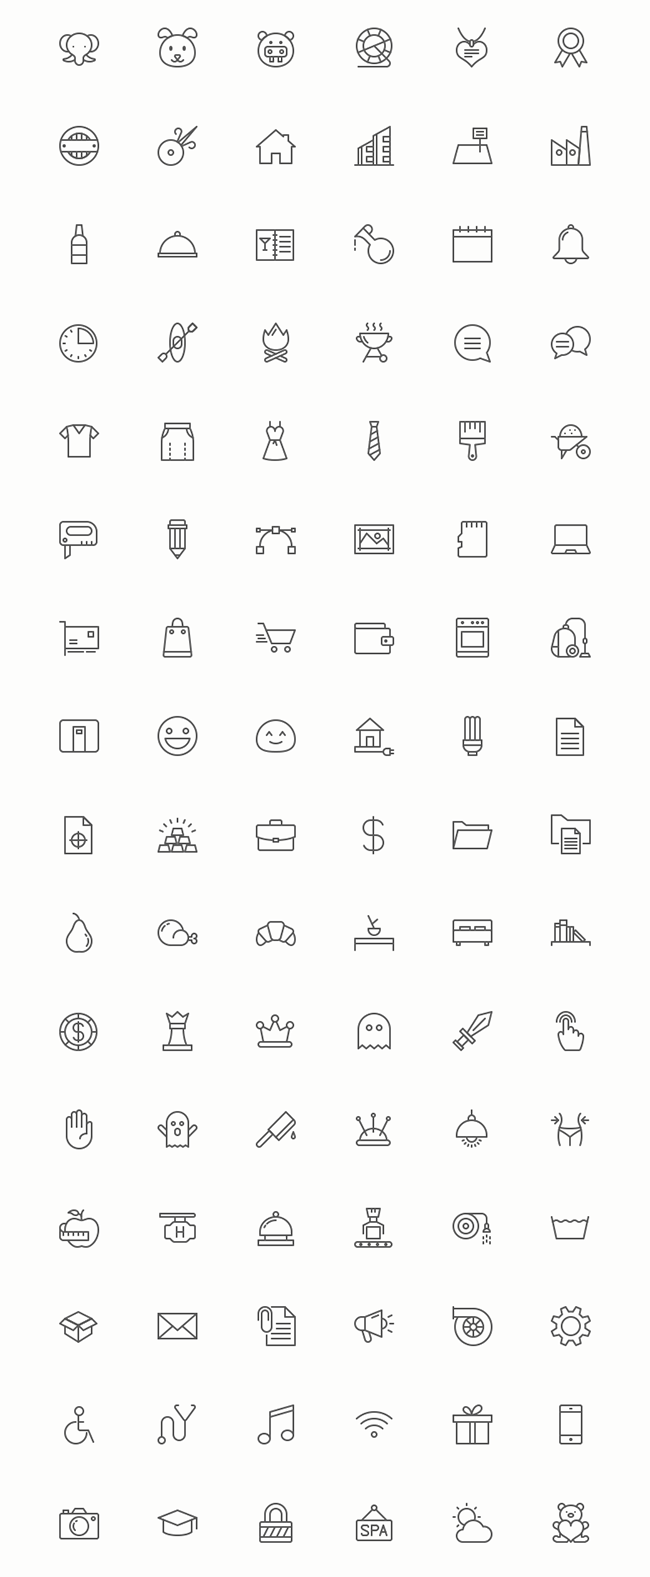 96-Slimicons-Minimalistic-Line-Vector-Icons